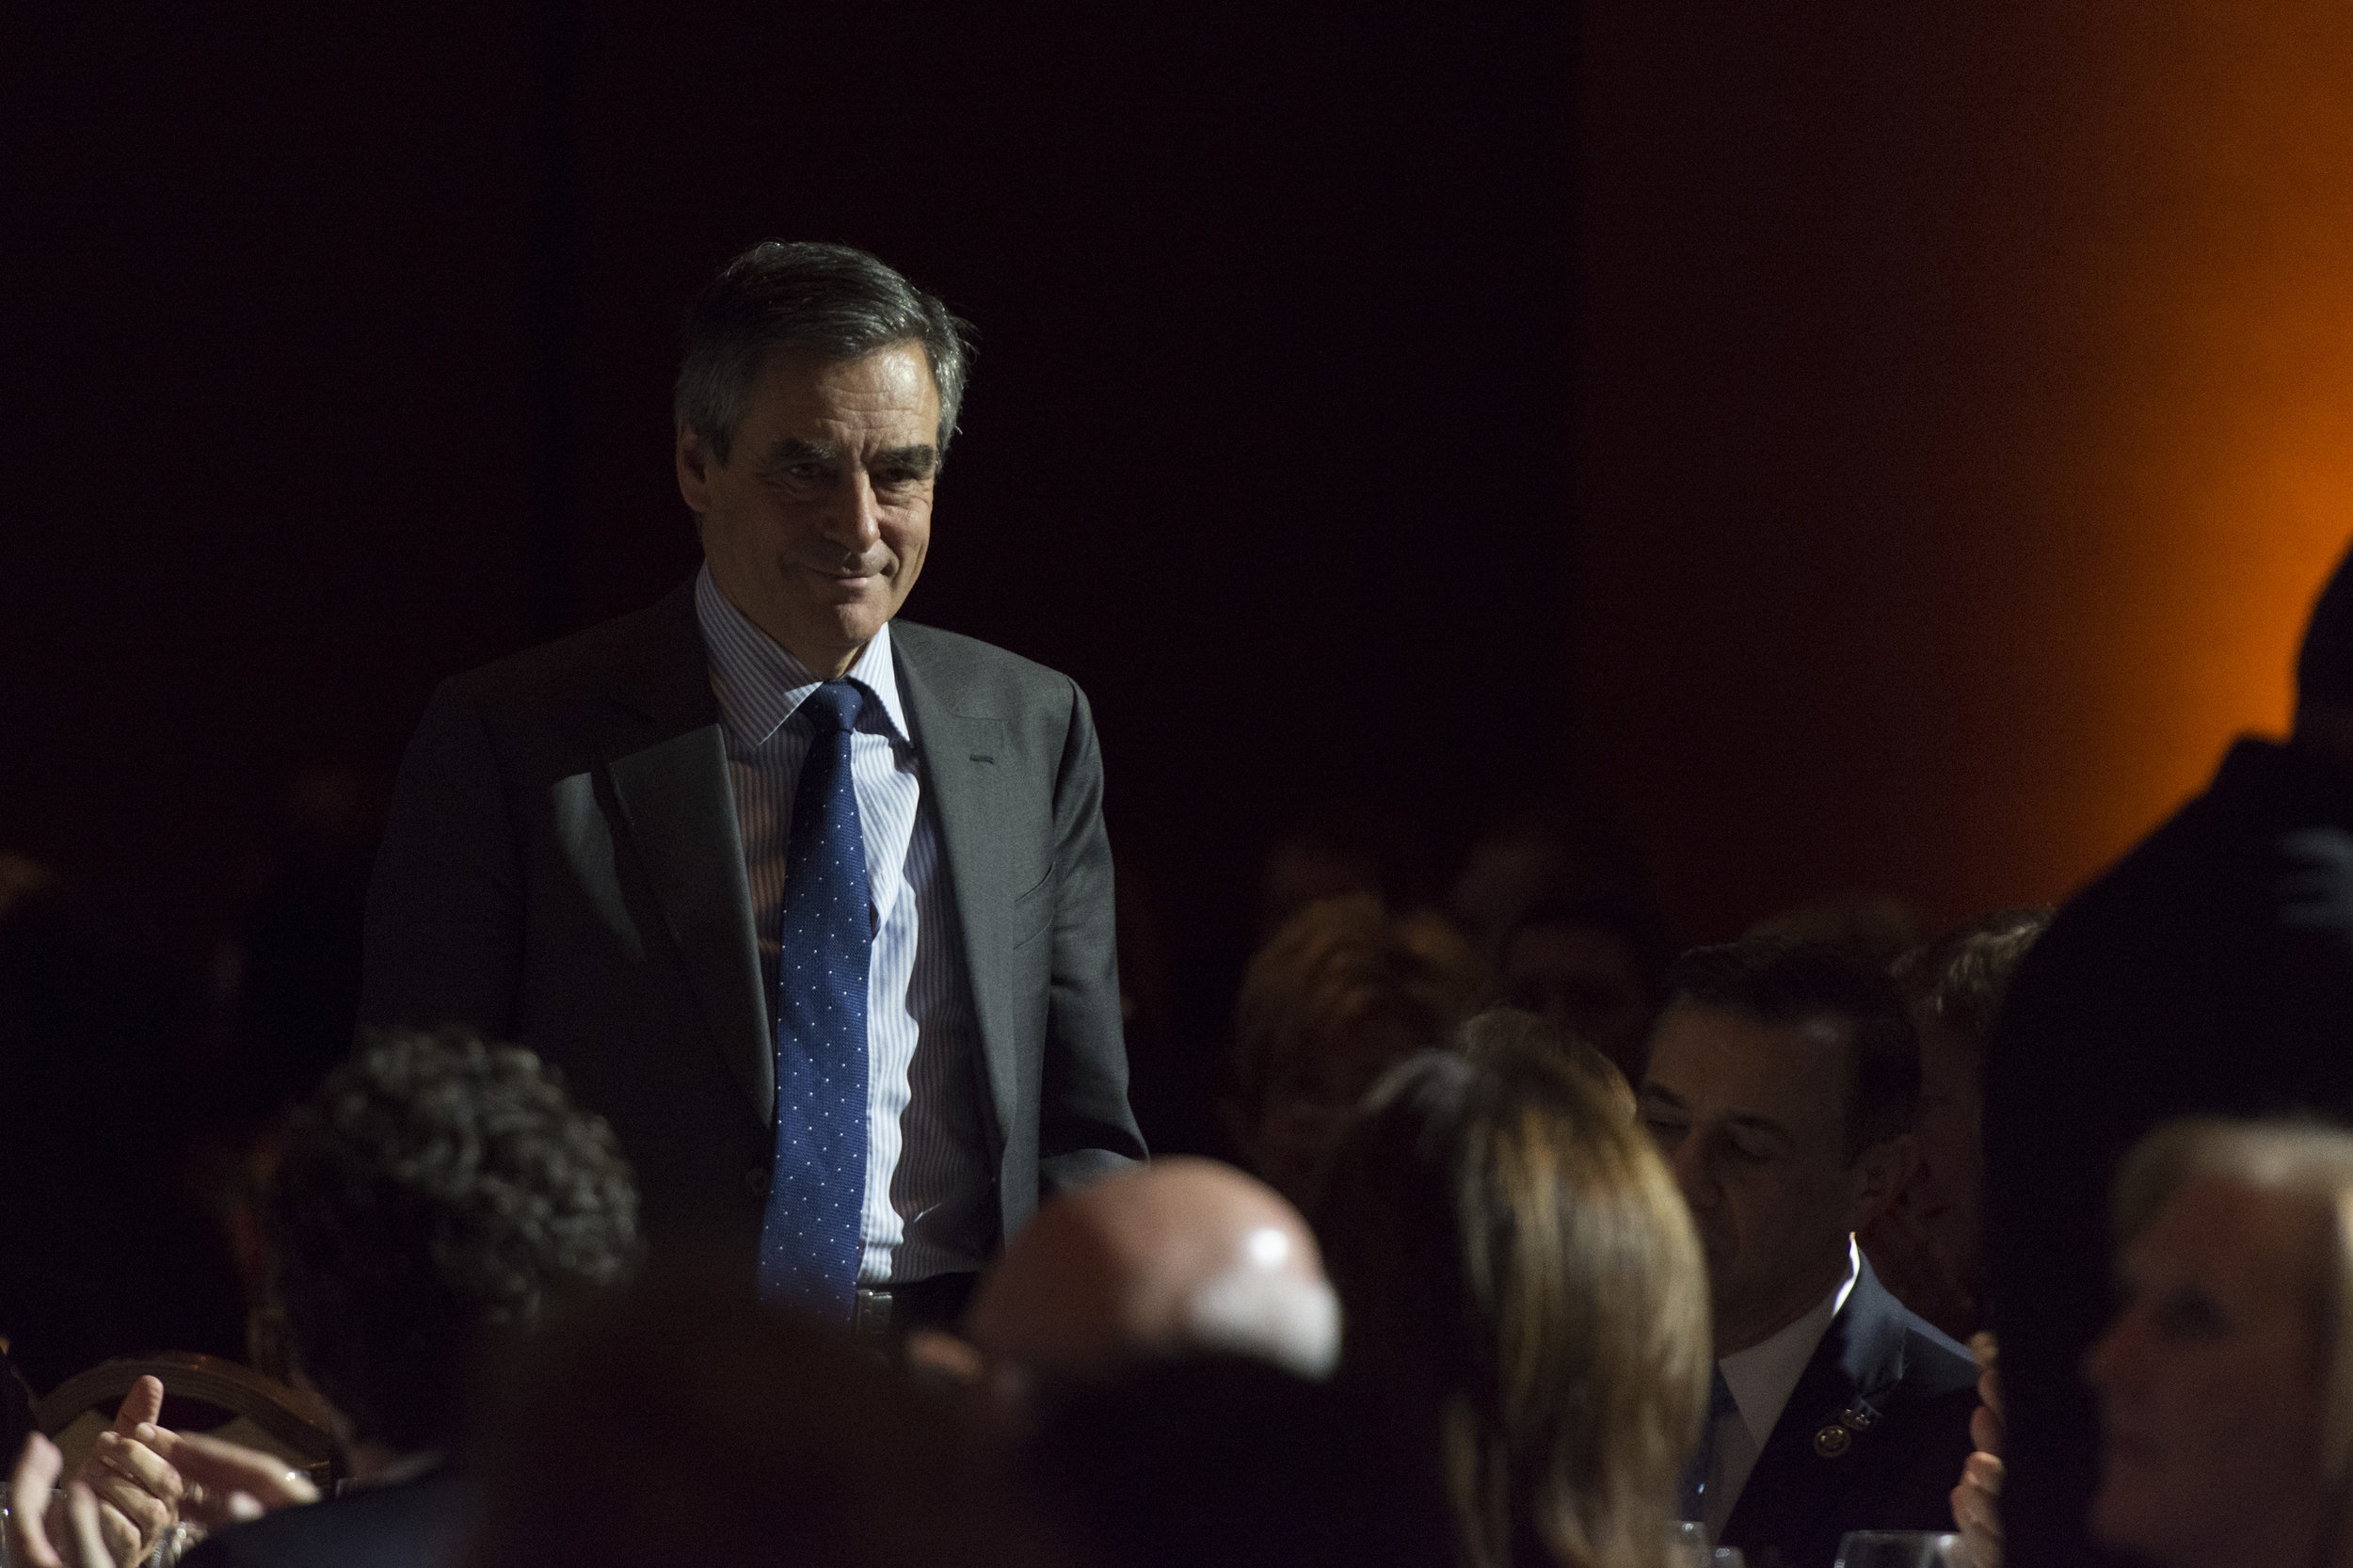 Francois Fillon, French Republican presidential candidate, stands as he's introduced by Gary Shapiro, CEO of the Consumer Technology Association, during the Leaders in Technology Dinner at the International Consumer Electronics Show (CES) in Las Vegas, Nevada, USA, on January 06, 2017. Jason Ogulnik/Sipa Press